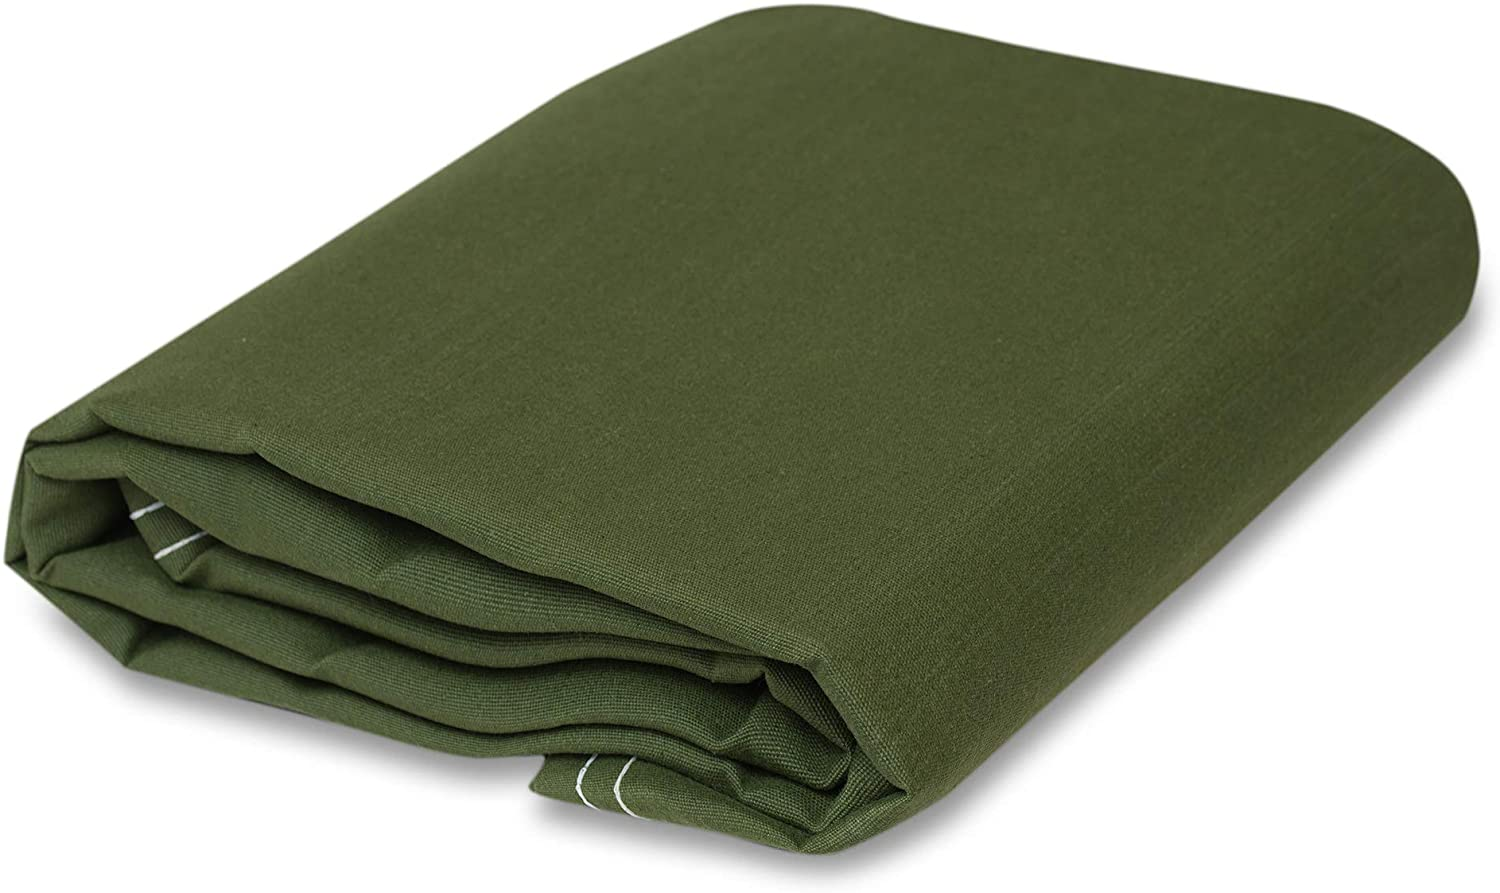 CCS CHICAGO CANVAS /& SUPPLY Iron Horse Canvas Tarp 5 feet x 7 feet, Green